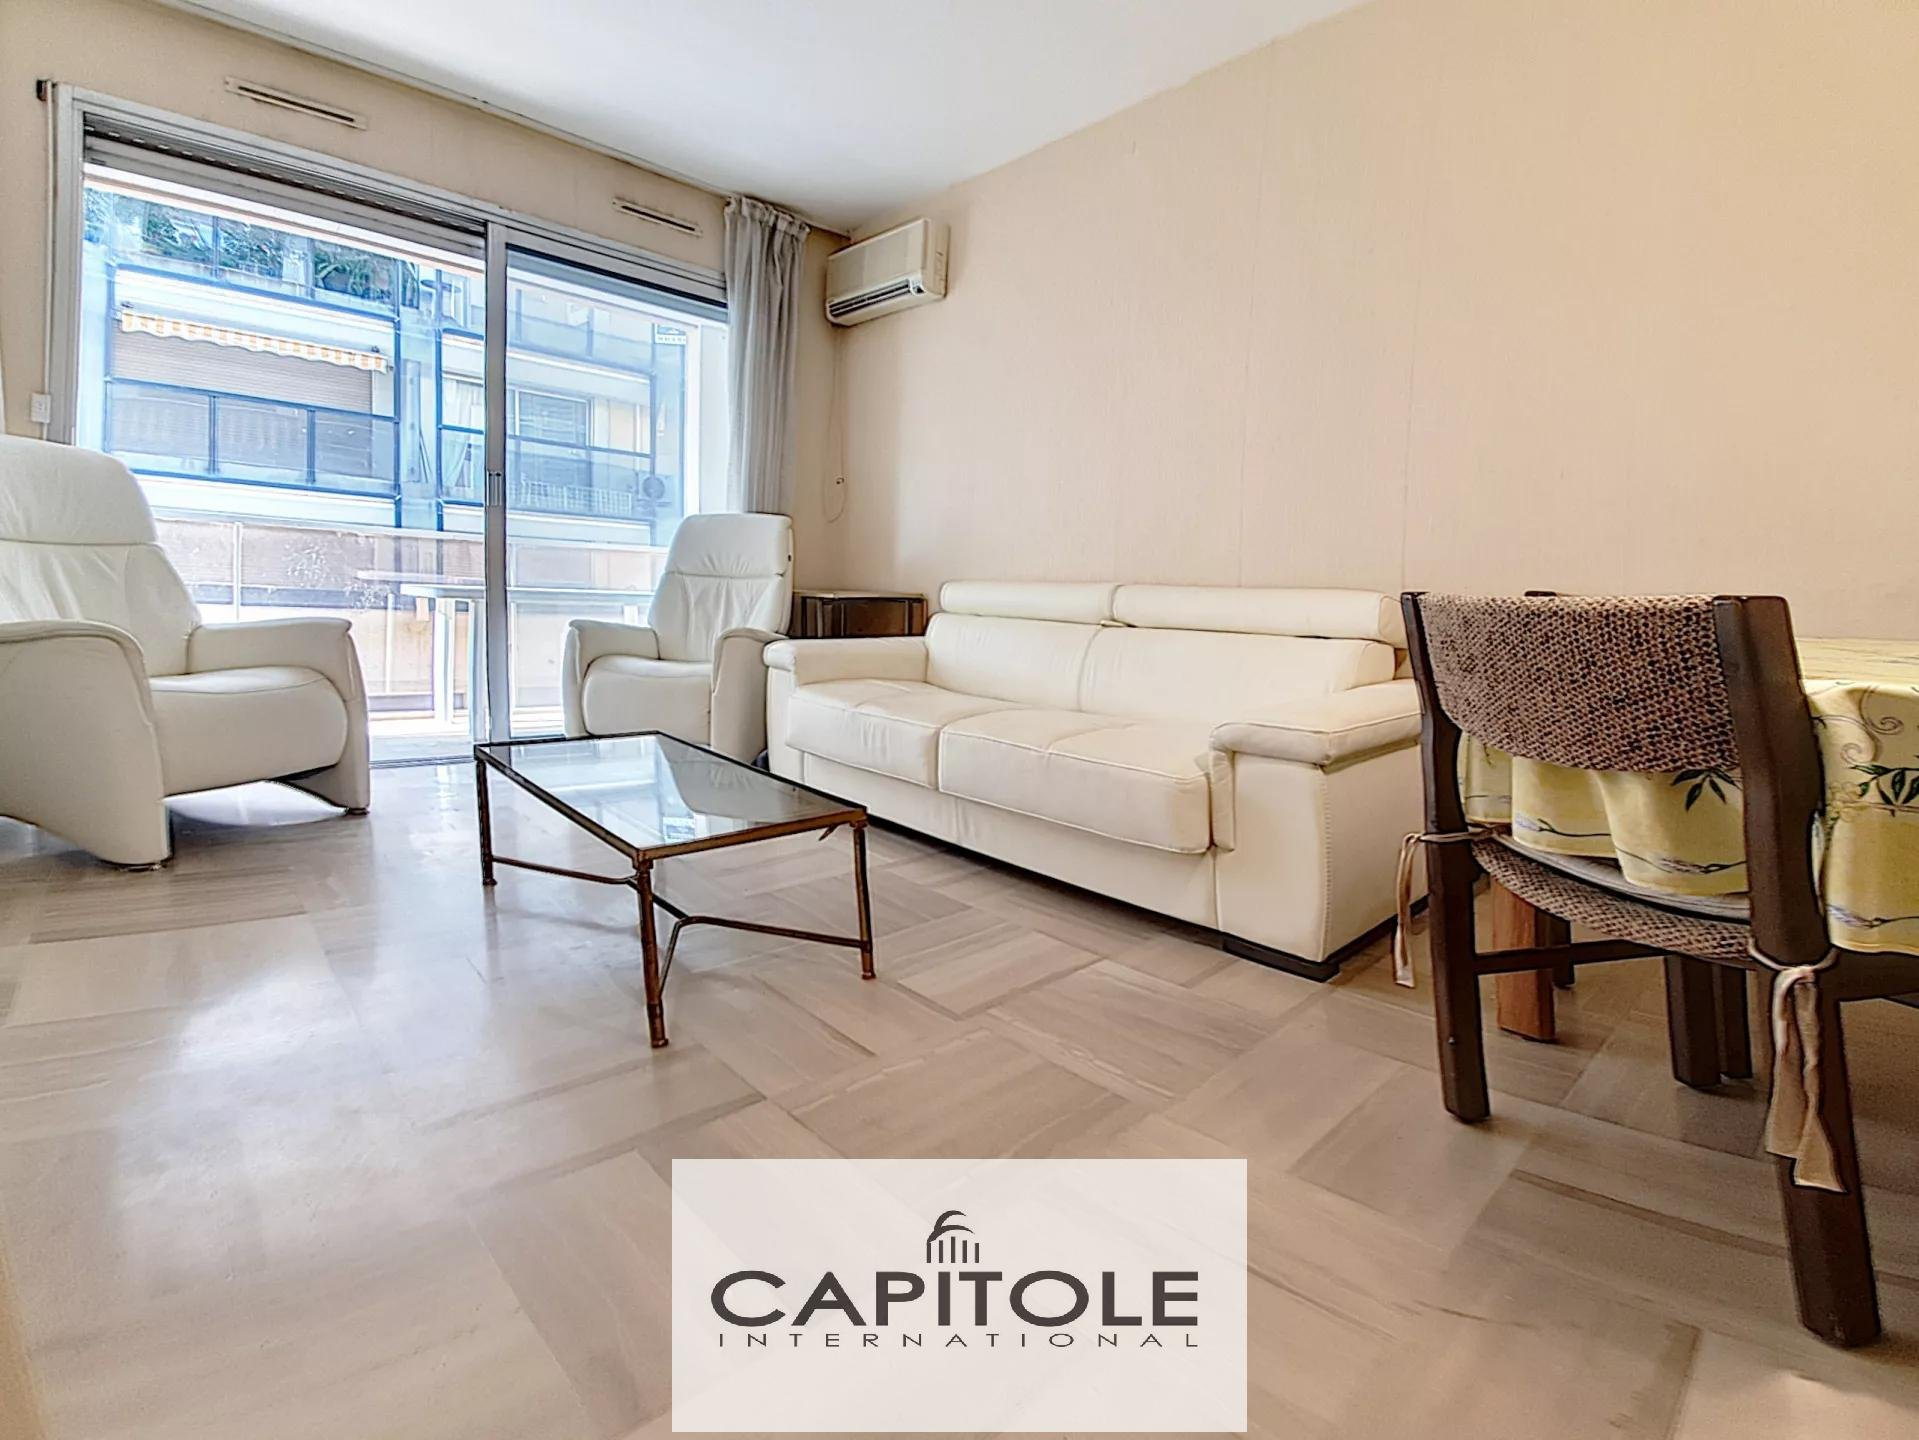 For sale, Antibes town center SOLE AGENT PROPERTY,  1 bedroom apartment, 43m², terrace, cellar